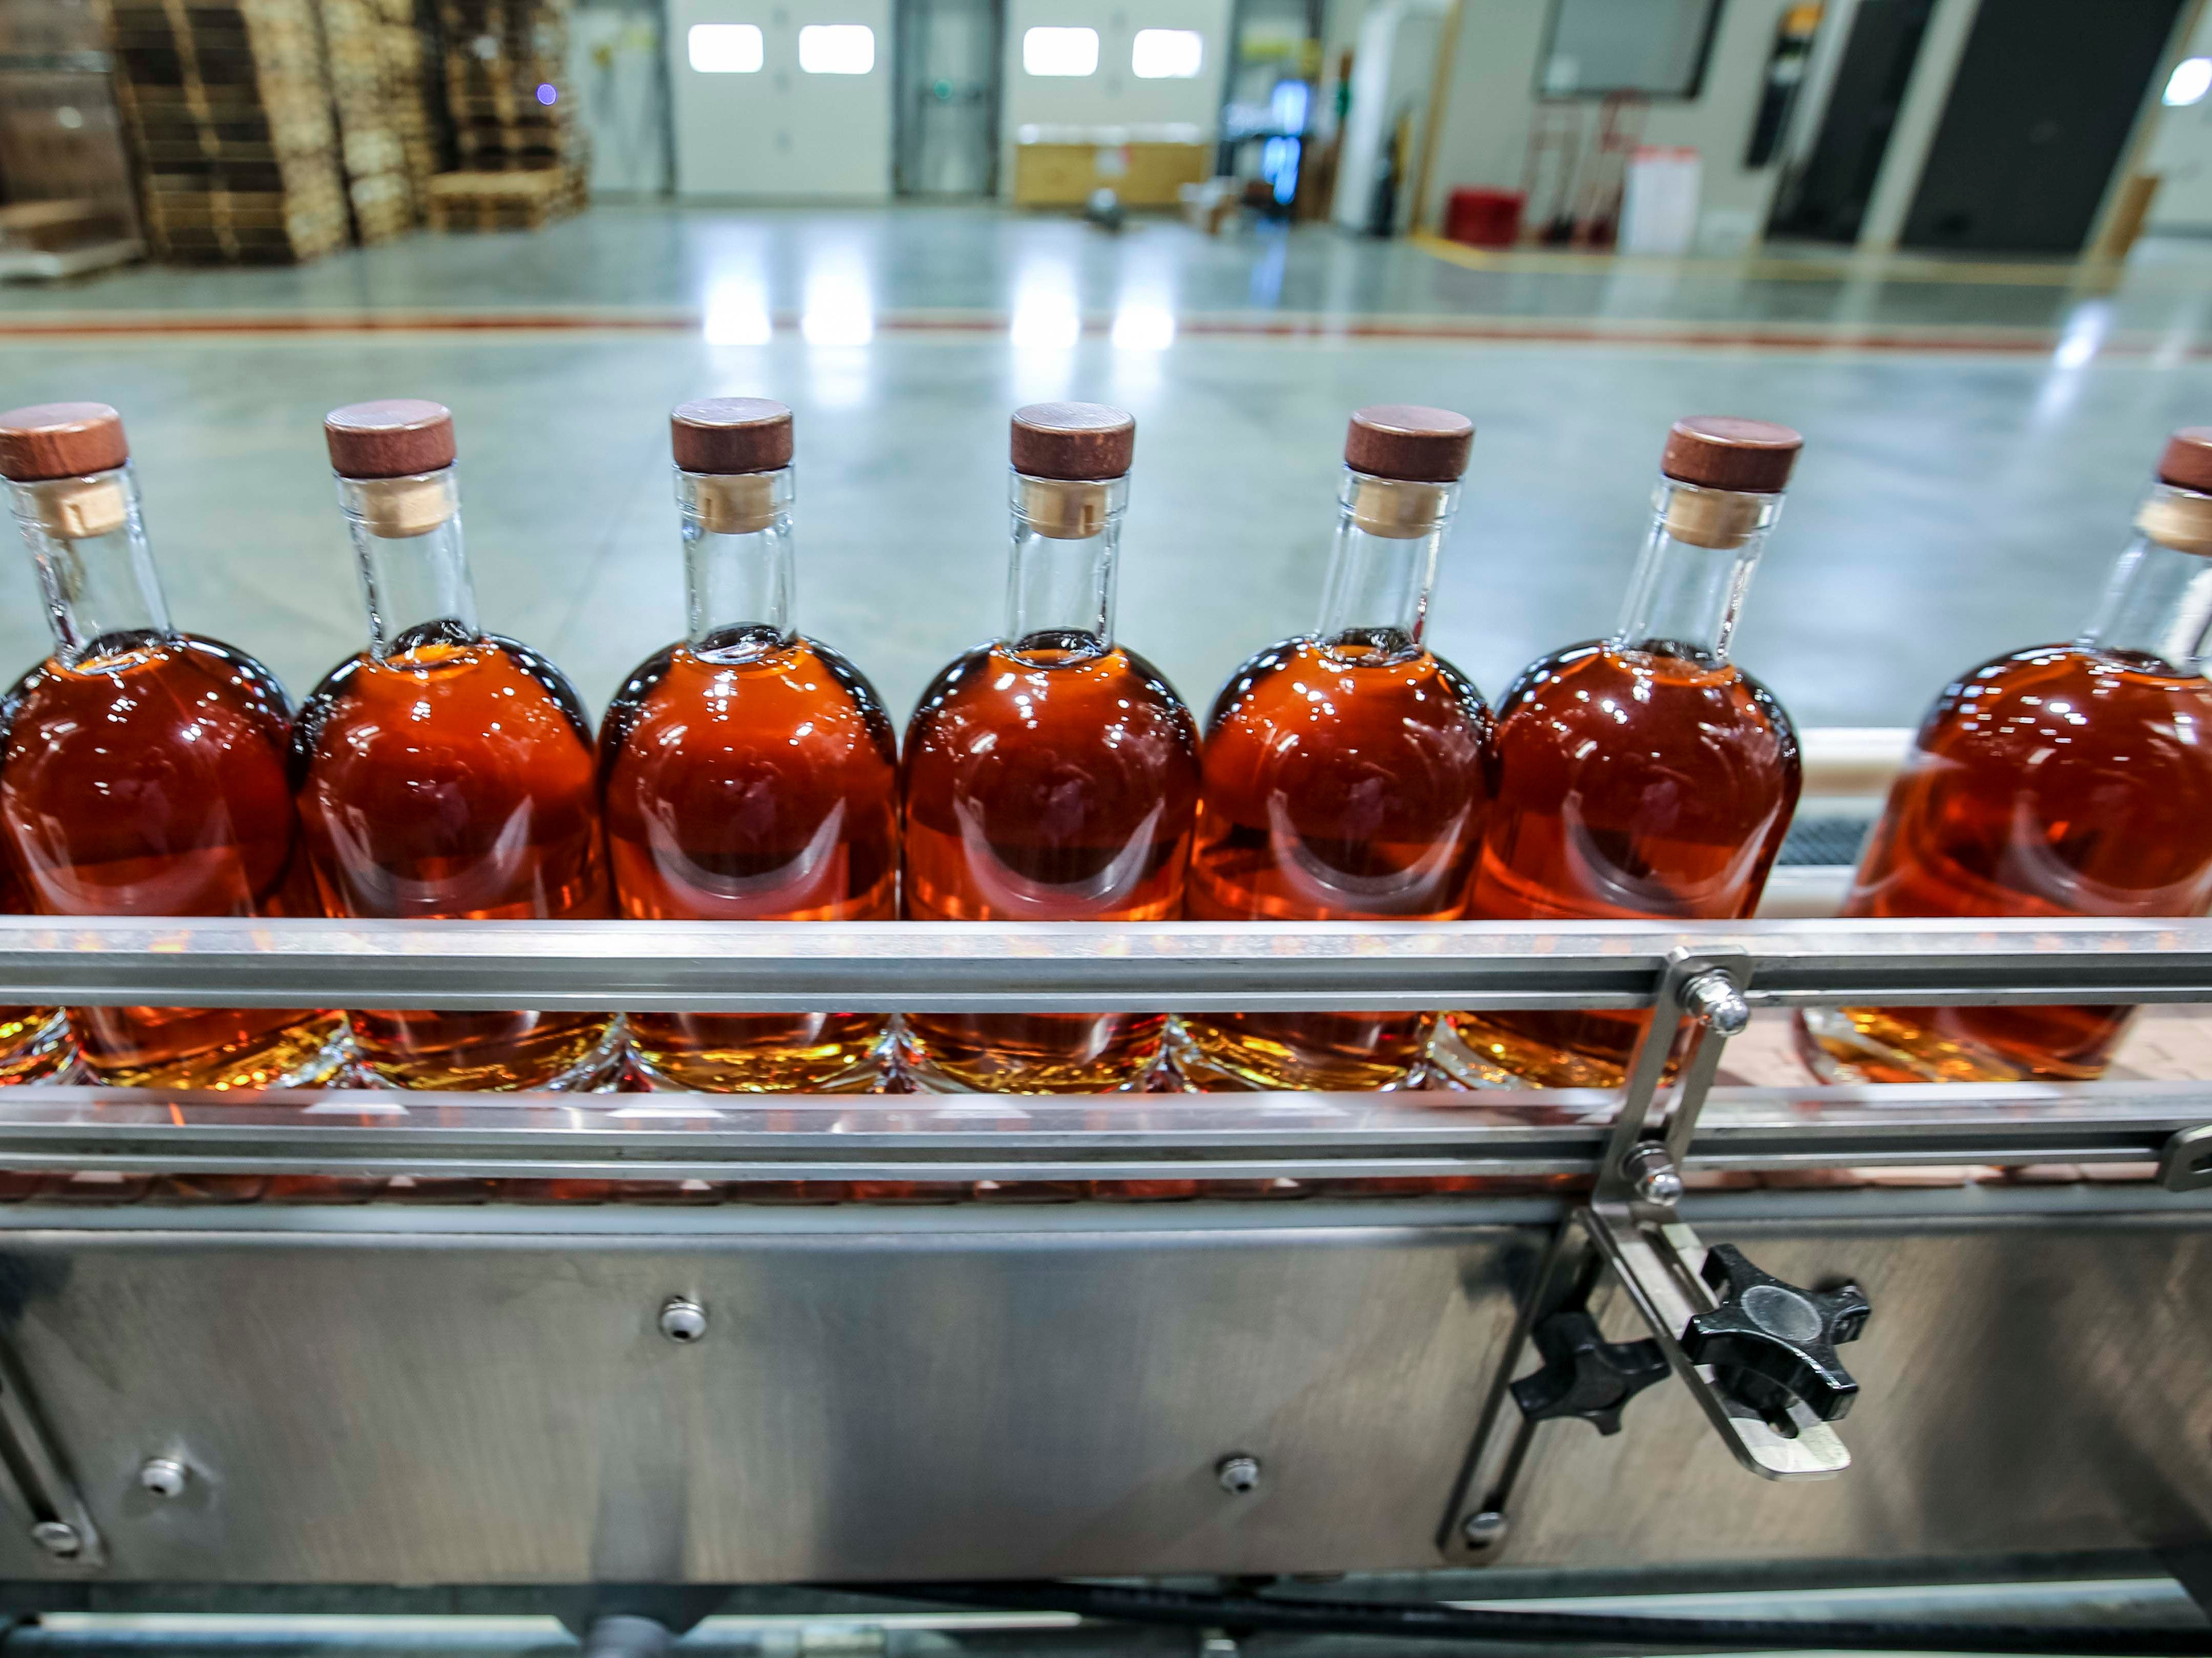 Workers bottle Templeton Rye in their new $35 million distillery in Templeton, Iowa, shown here Monday, Aug. 6, 2018, featuring a museum and visitor's center.